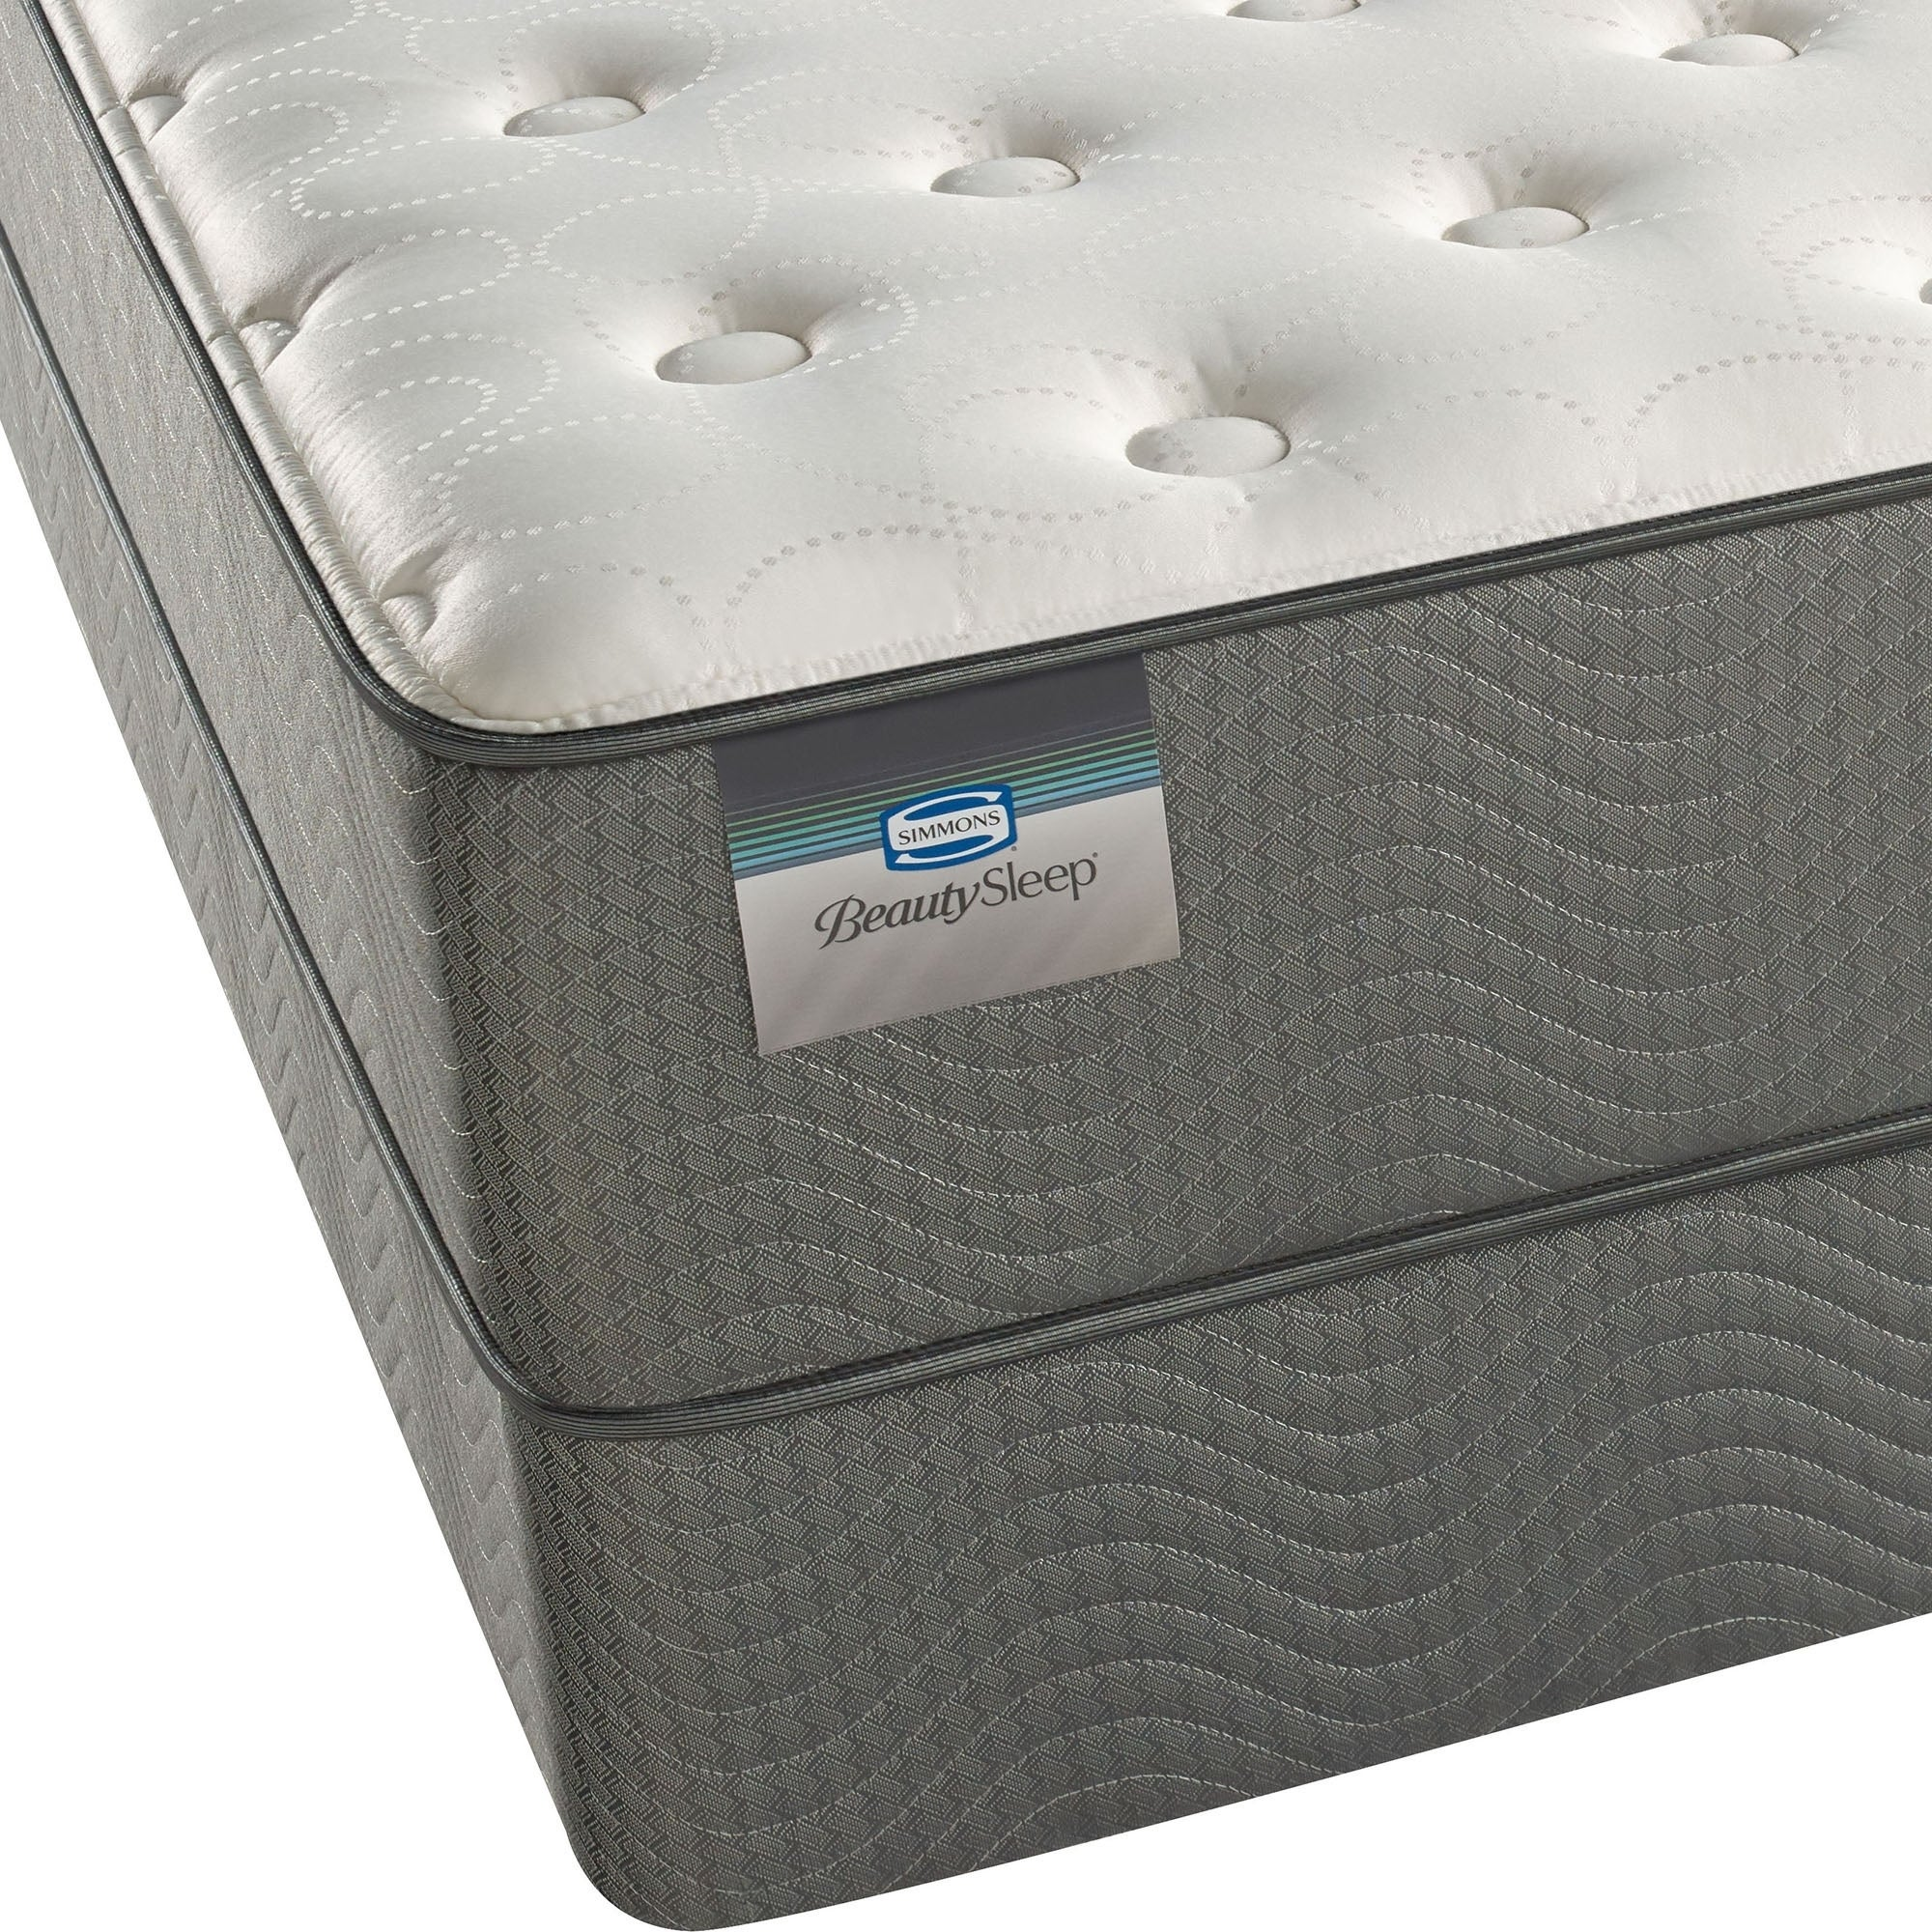 cal charming mattress hlc archived adjustable wheel tempurpedic metal firm headboard queen on astounding frames beds frame bed king california and for set full nz licious